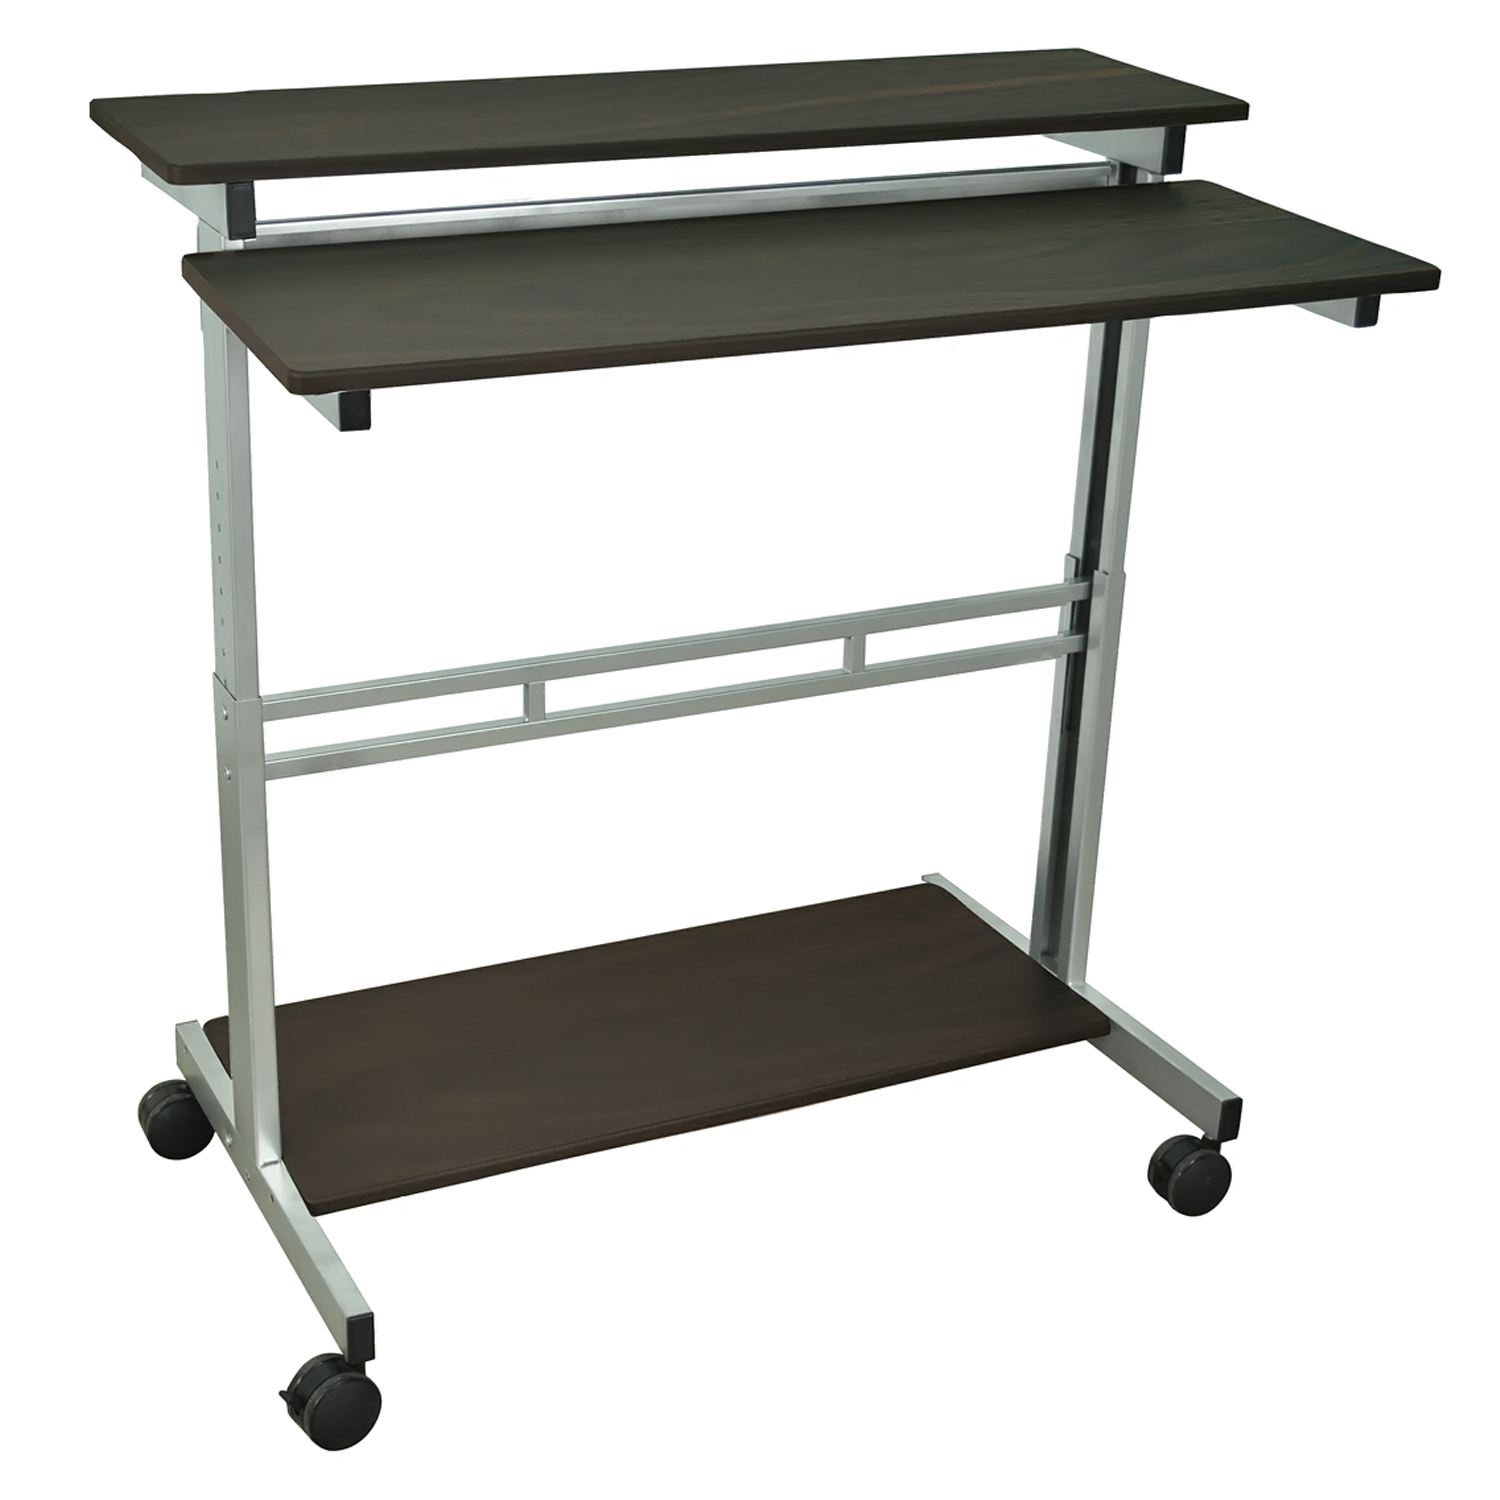 Offex 40 Home Office Computer Presentation Stand Cart With Silver Gray And Dark Walnut Shelves